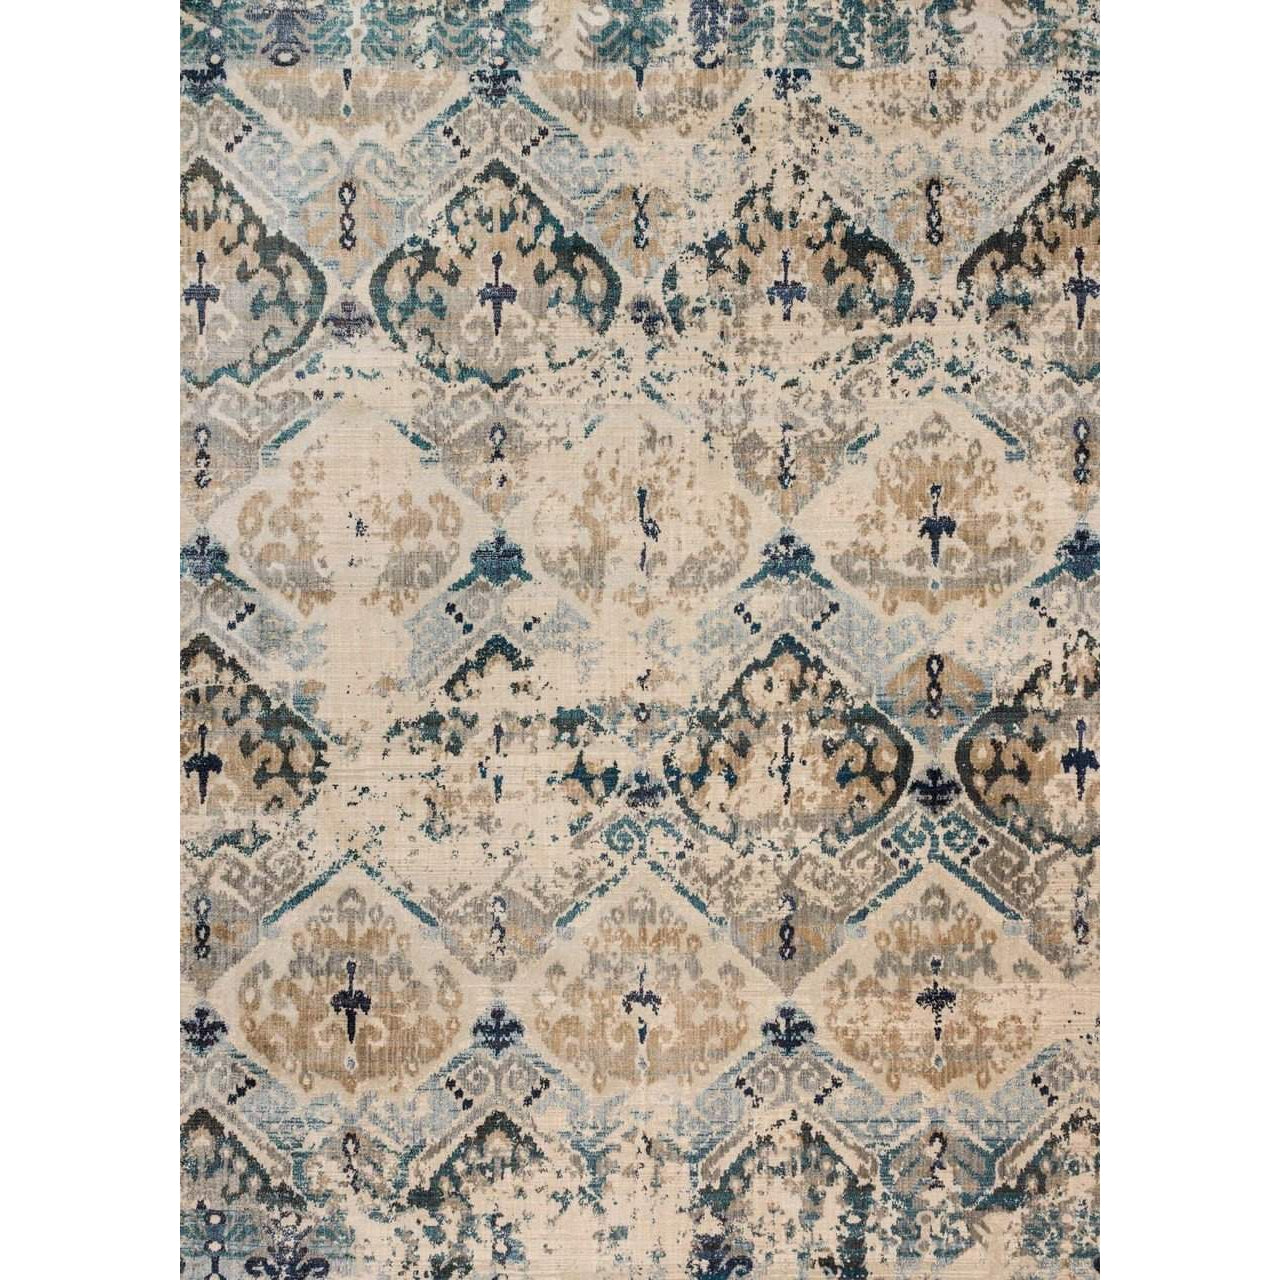 Joanna Gaines Kivi Rug Collection - Sand / Ocean - Blue Hand Home